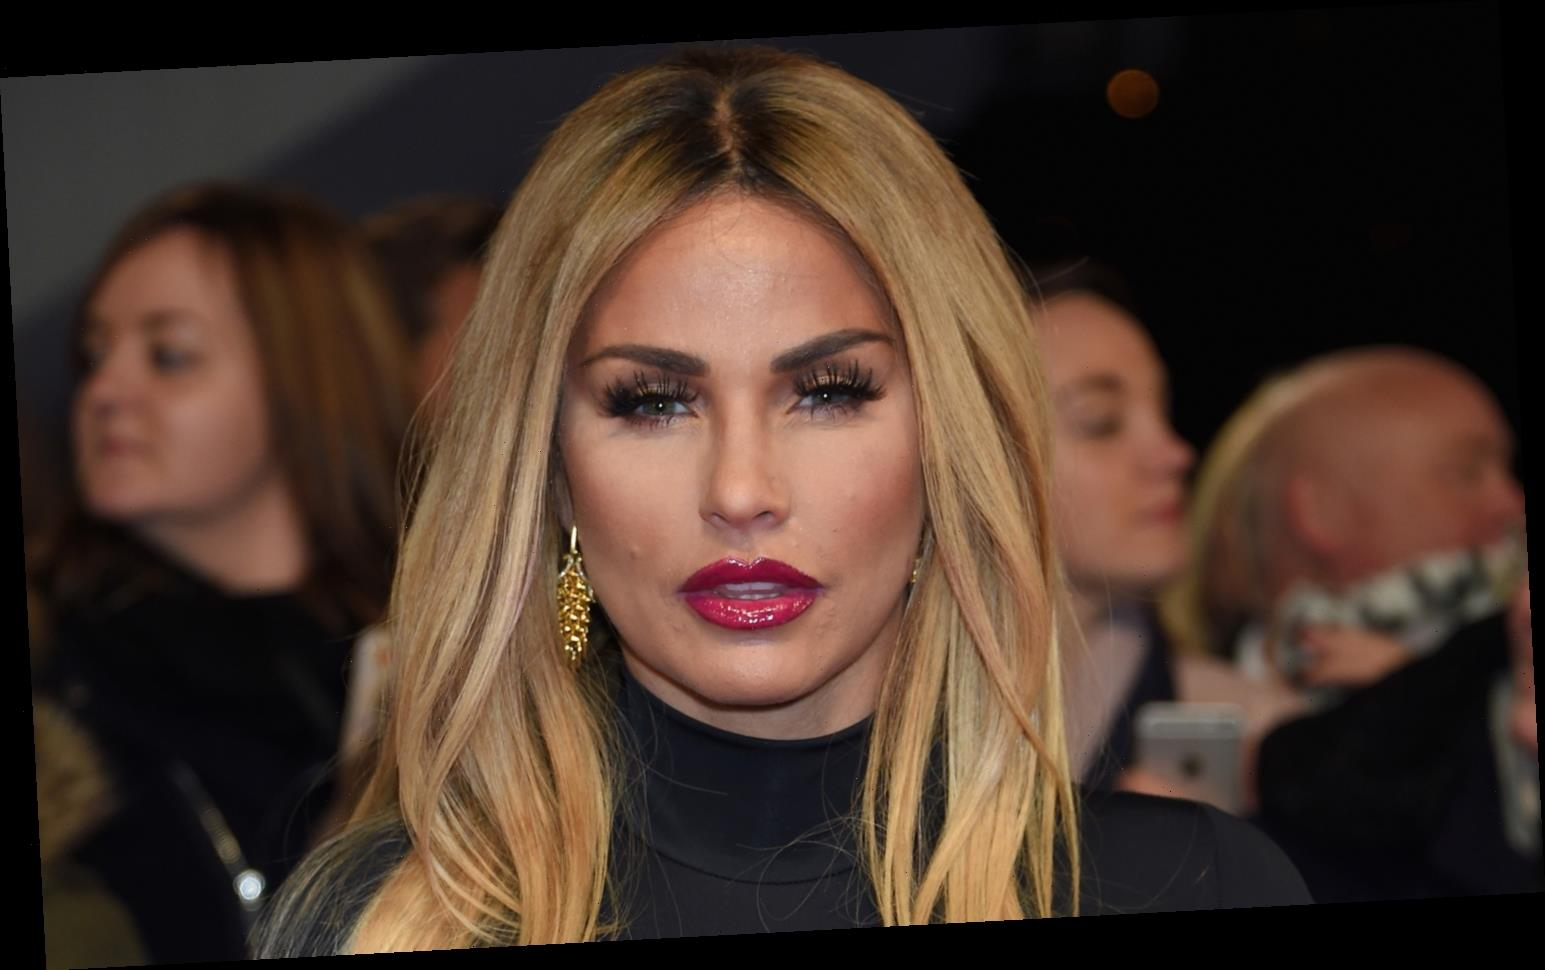 UK Star Katie Price Explains Decision to Place 18-Year-Old Son Into Care